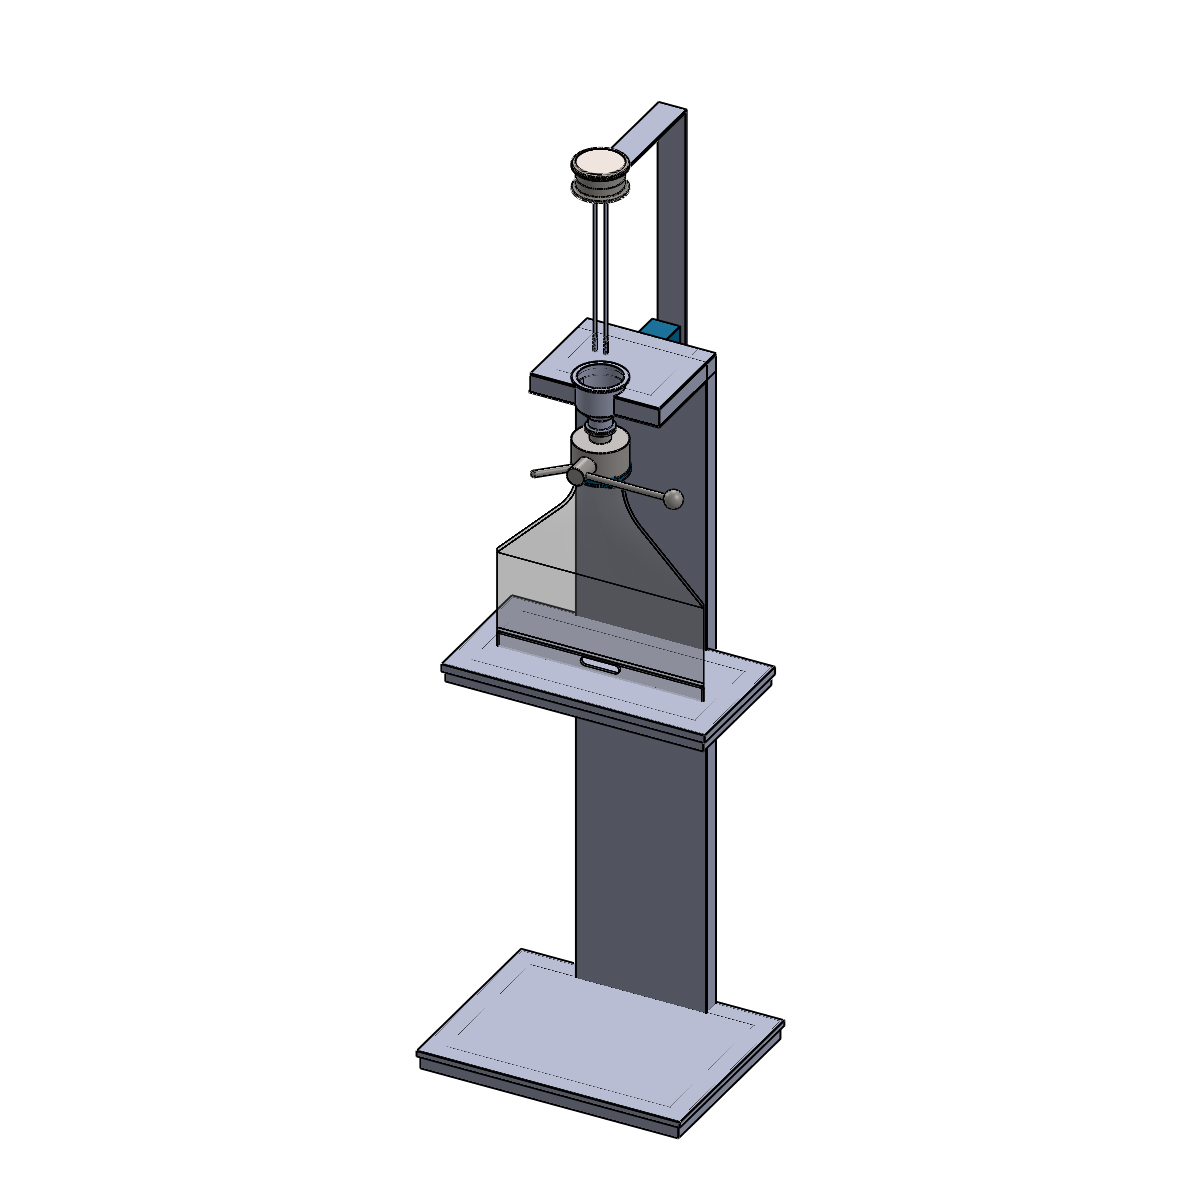 Render of split valve cleaning station